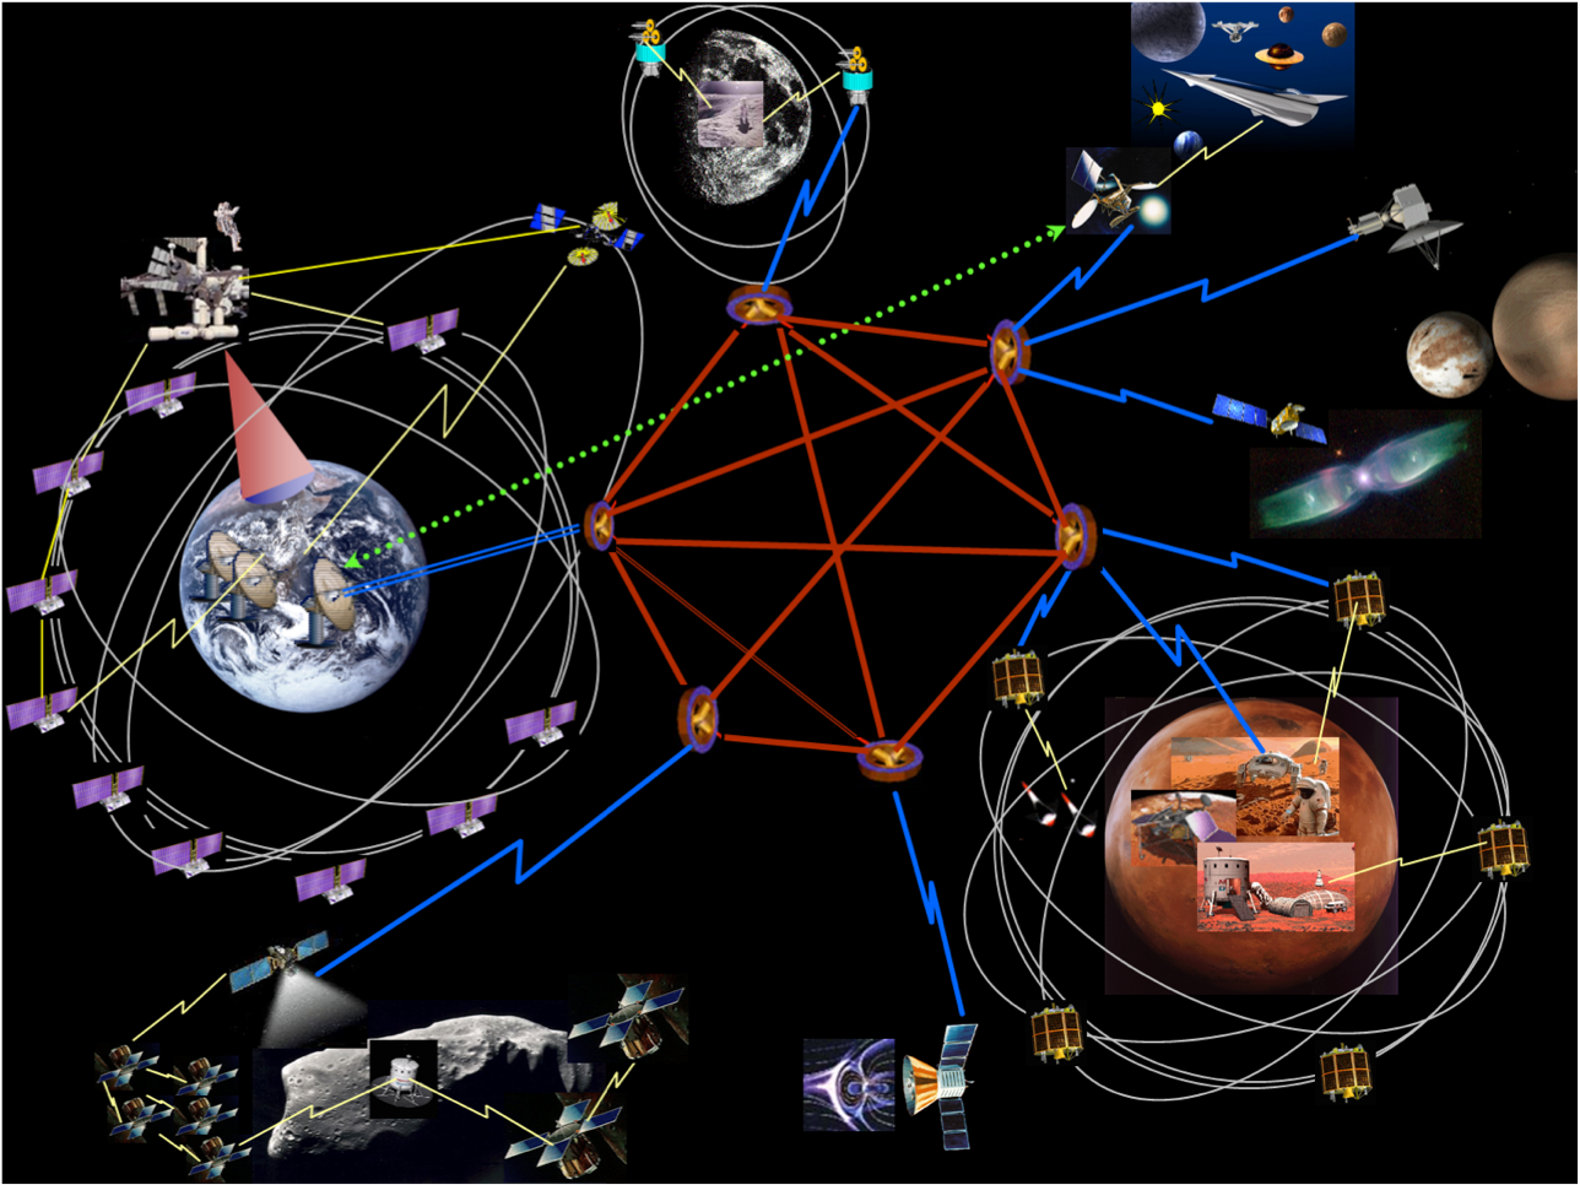 New NASA tech could provide the entire solar system with internet